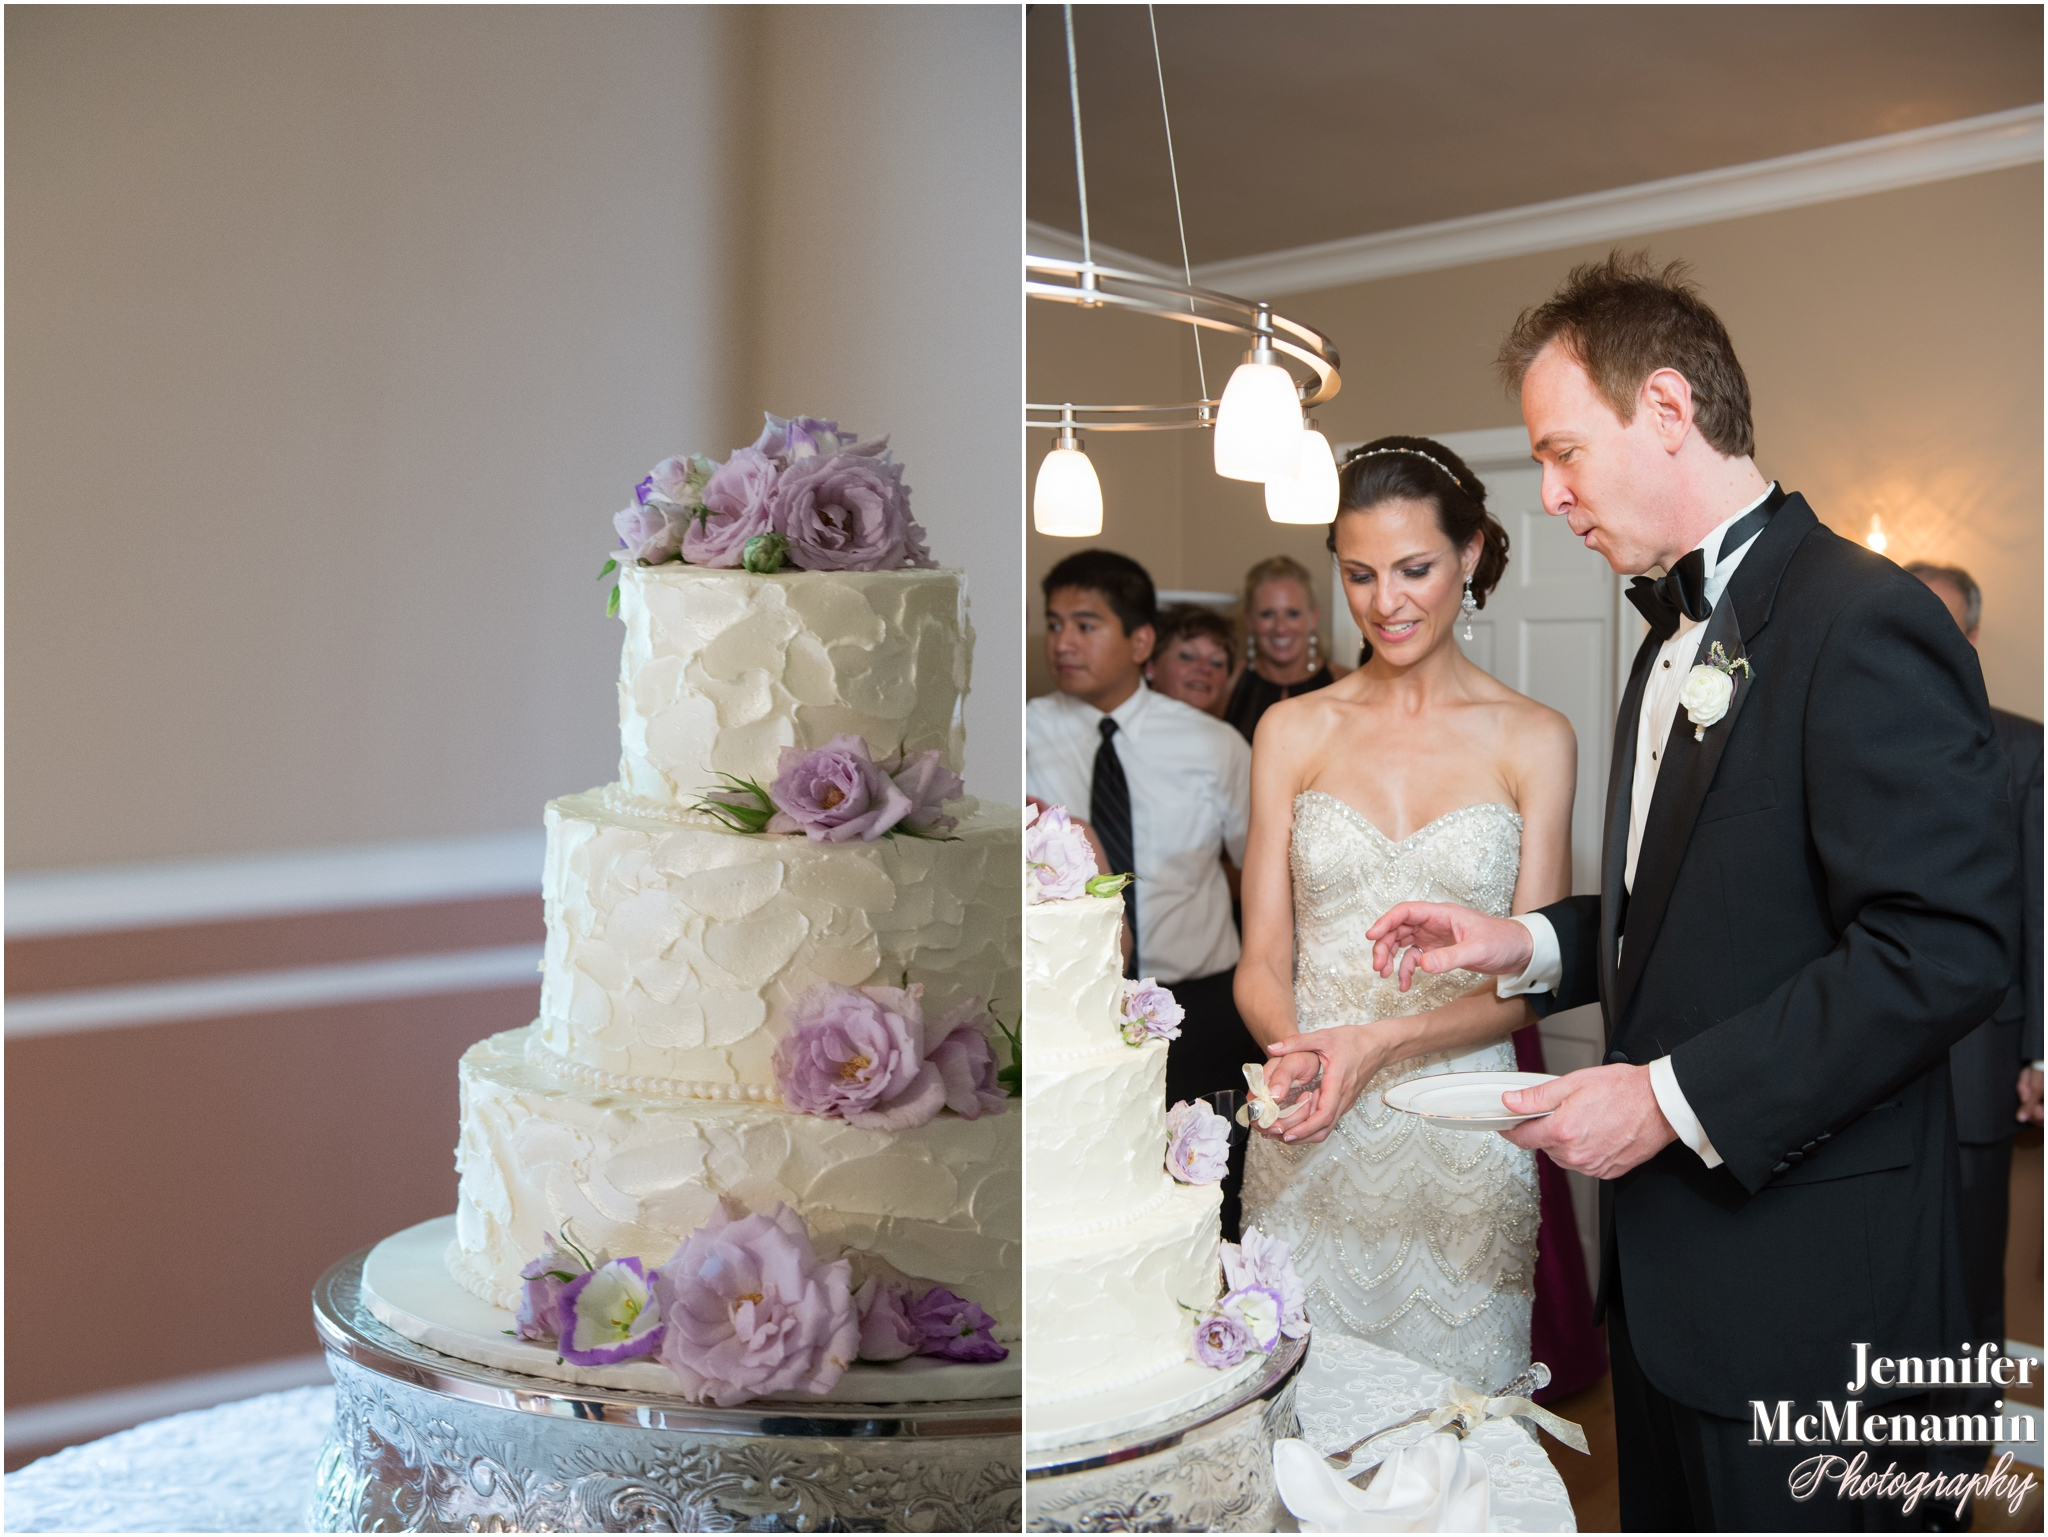 053-CoughlinPomper_02819-0568_JenniferMcMenaminPhotography_Private-Residence-Roland-Park_Baltimore-Wedding-Photography